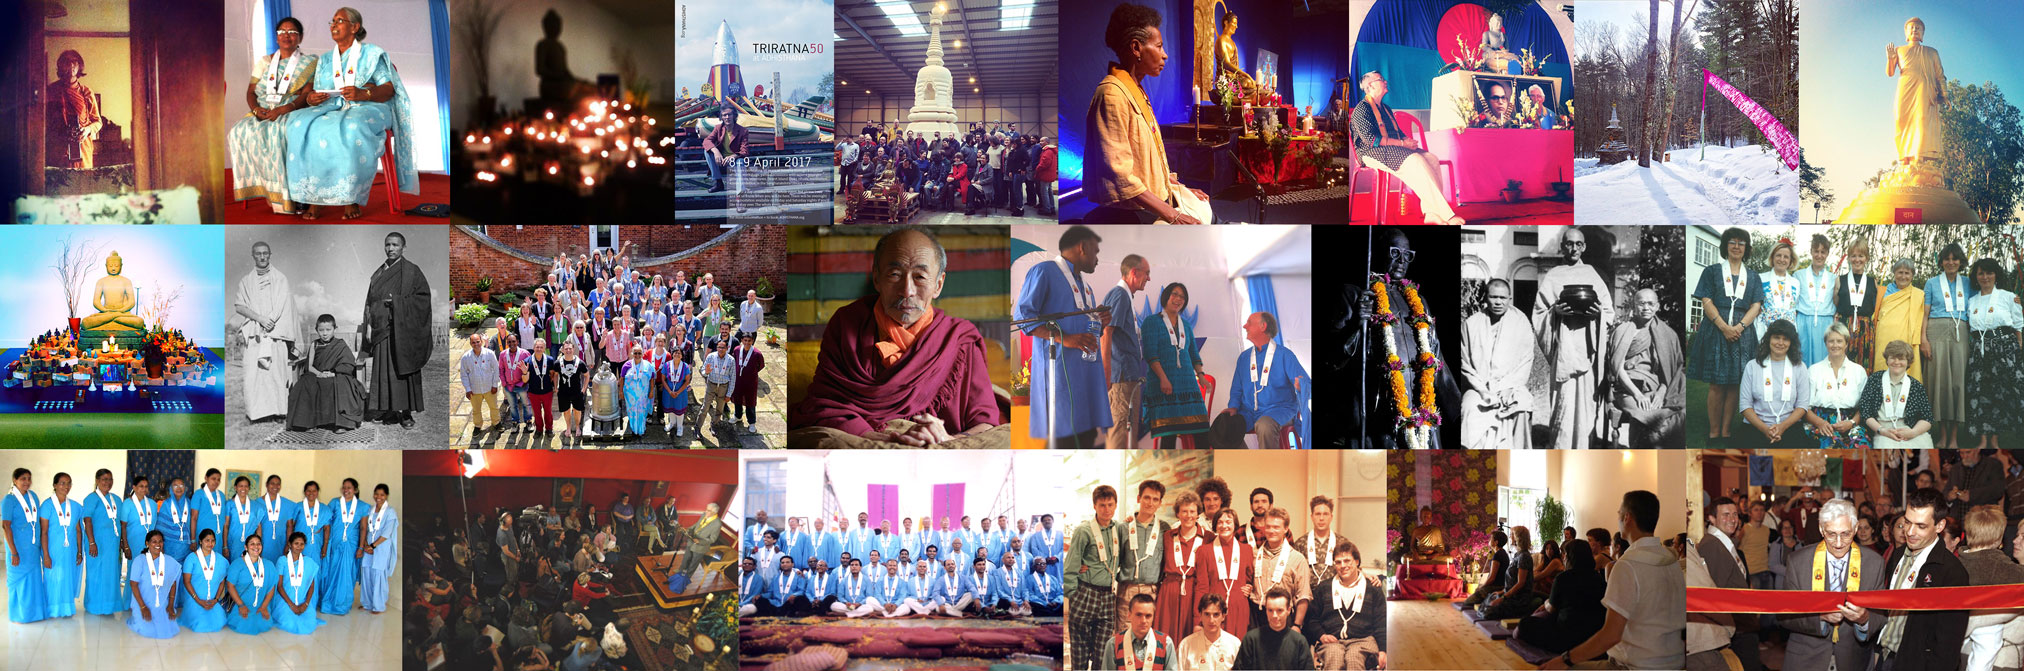 A collage of images from 50 years of Triratna